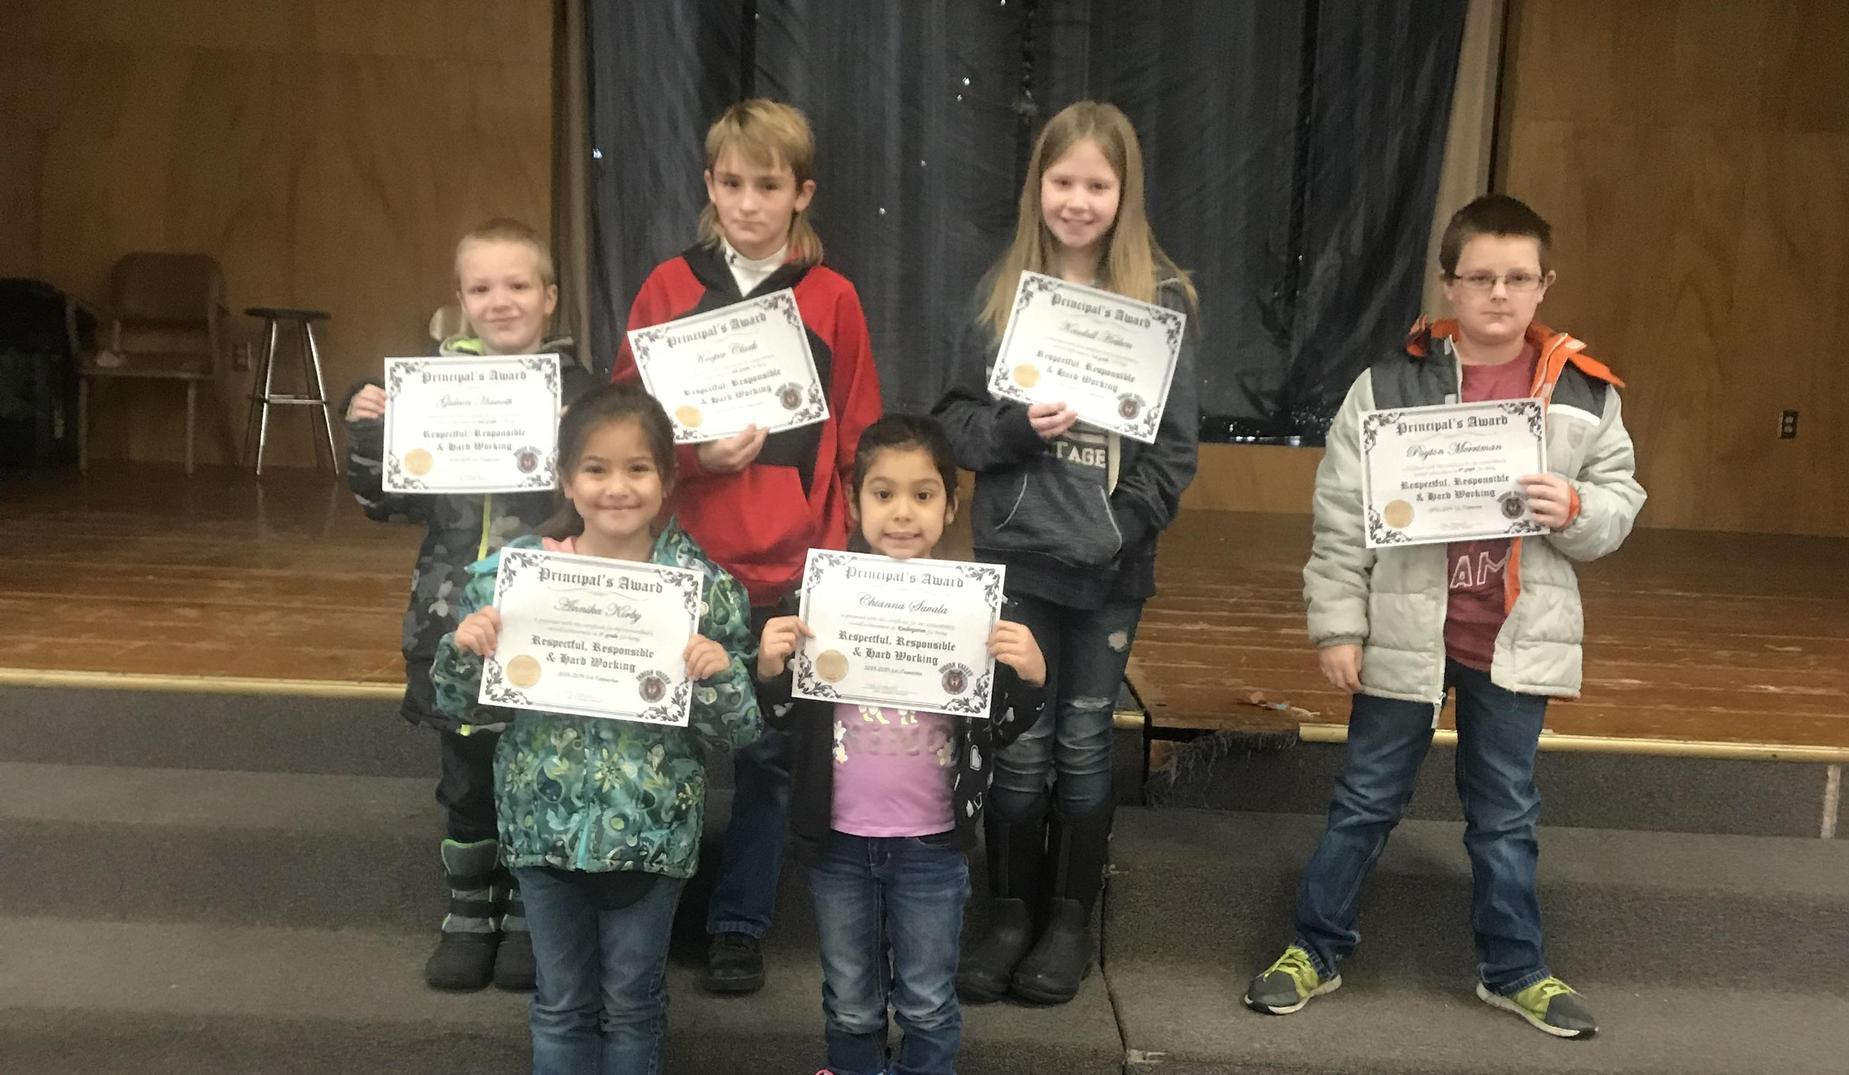 1st Trimester Principal's Award for Being Respectful, Responsible, and Hard-Working